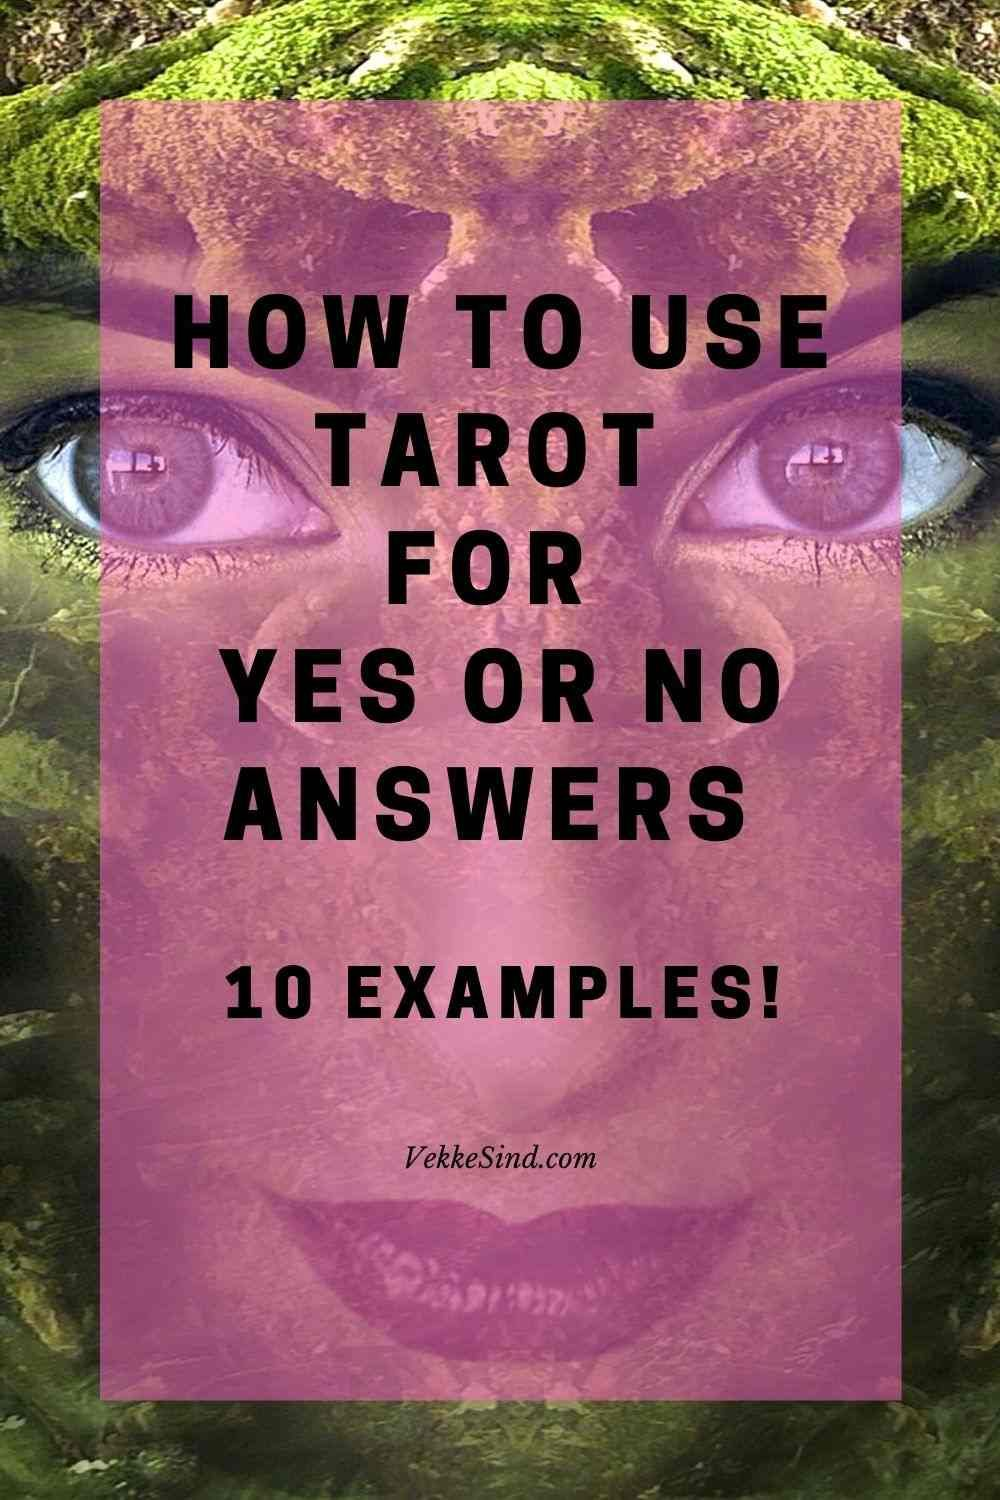 How to use tarot for yes or no answers with 10 examples